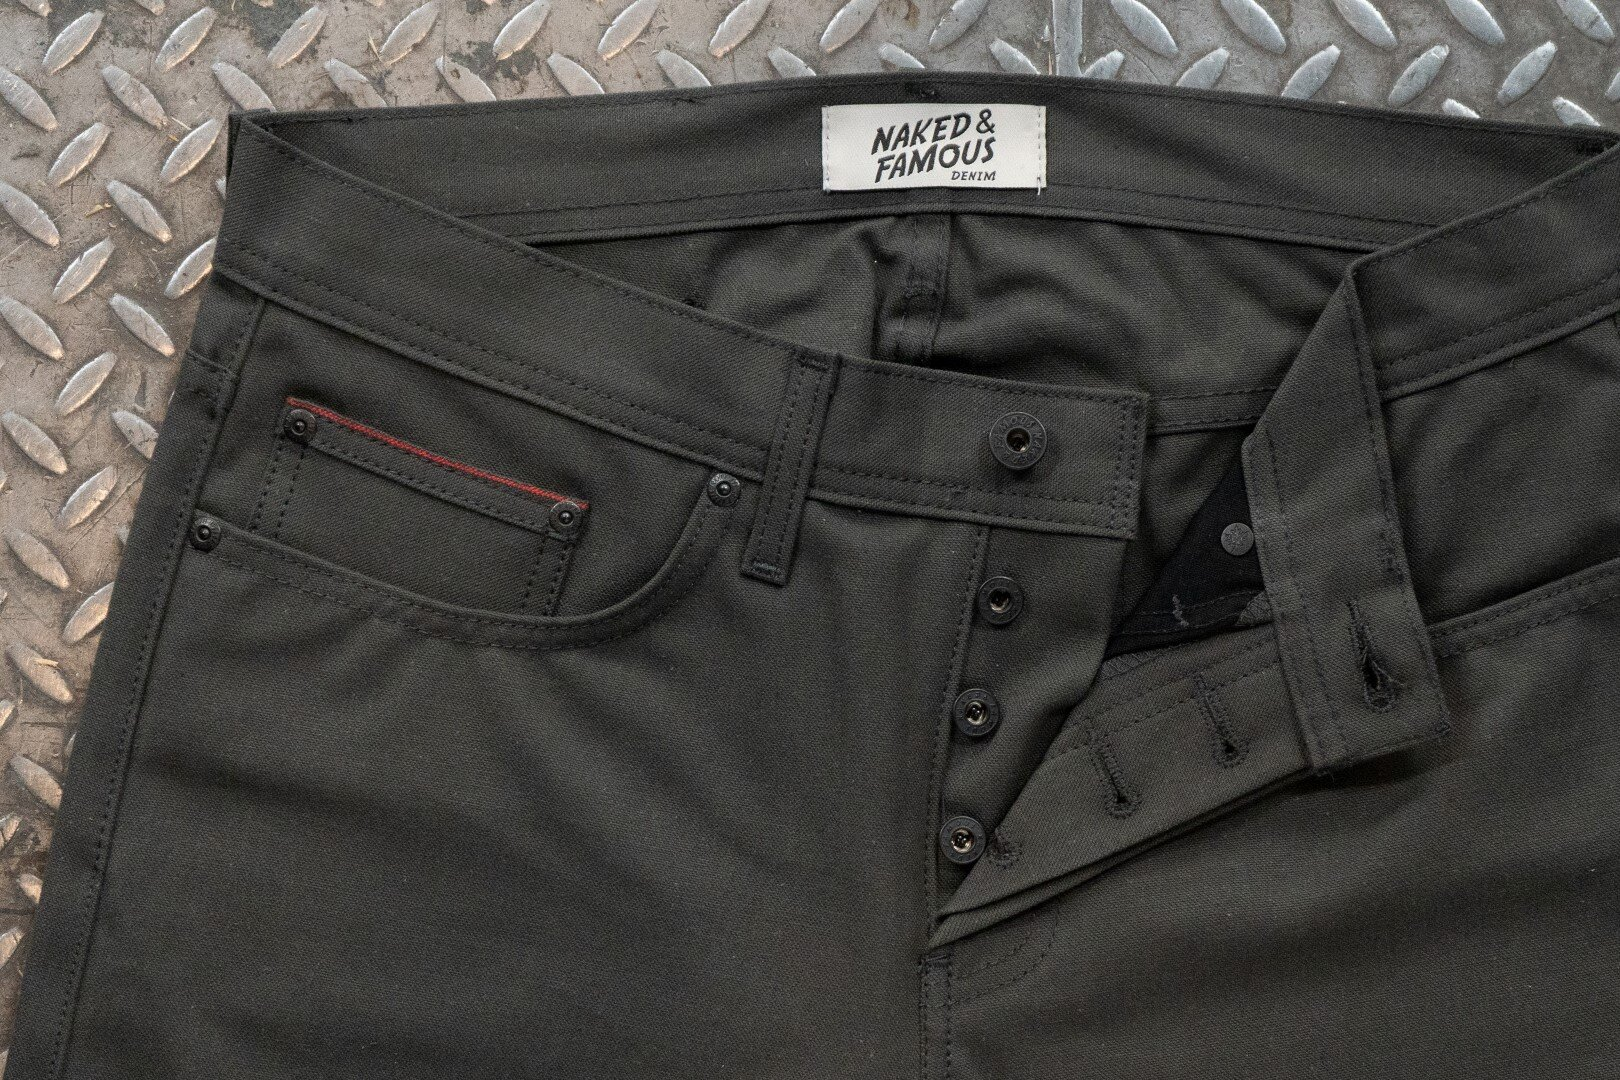 Blackened Steel Duck Selvedge - Hardware